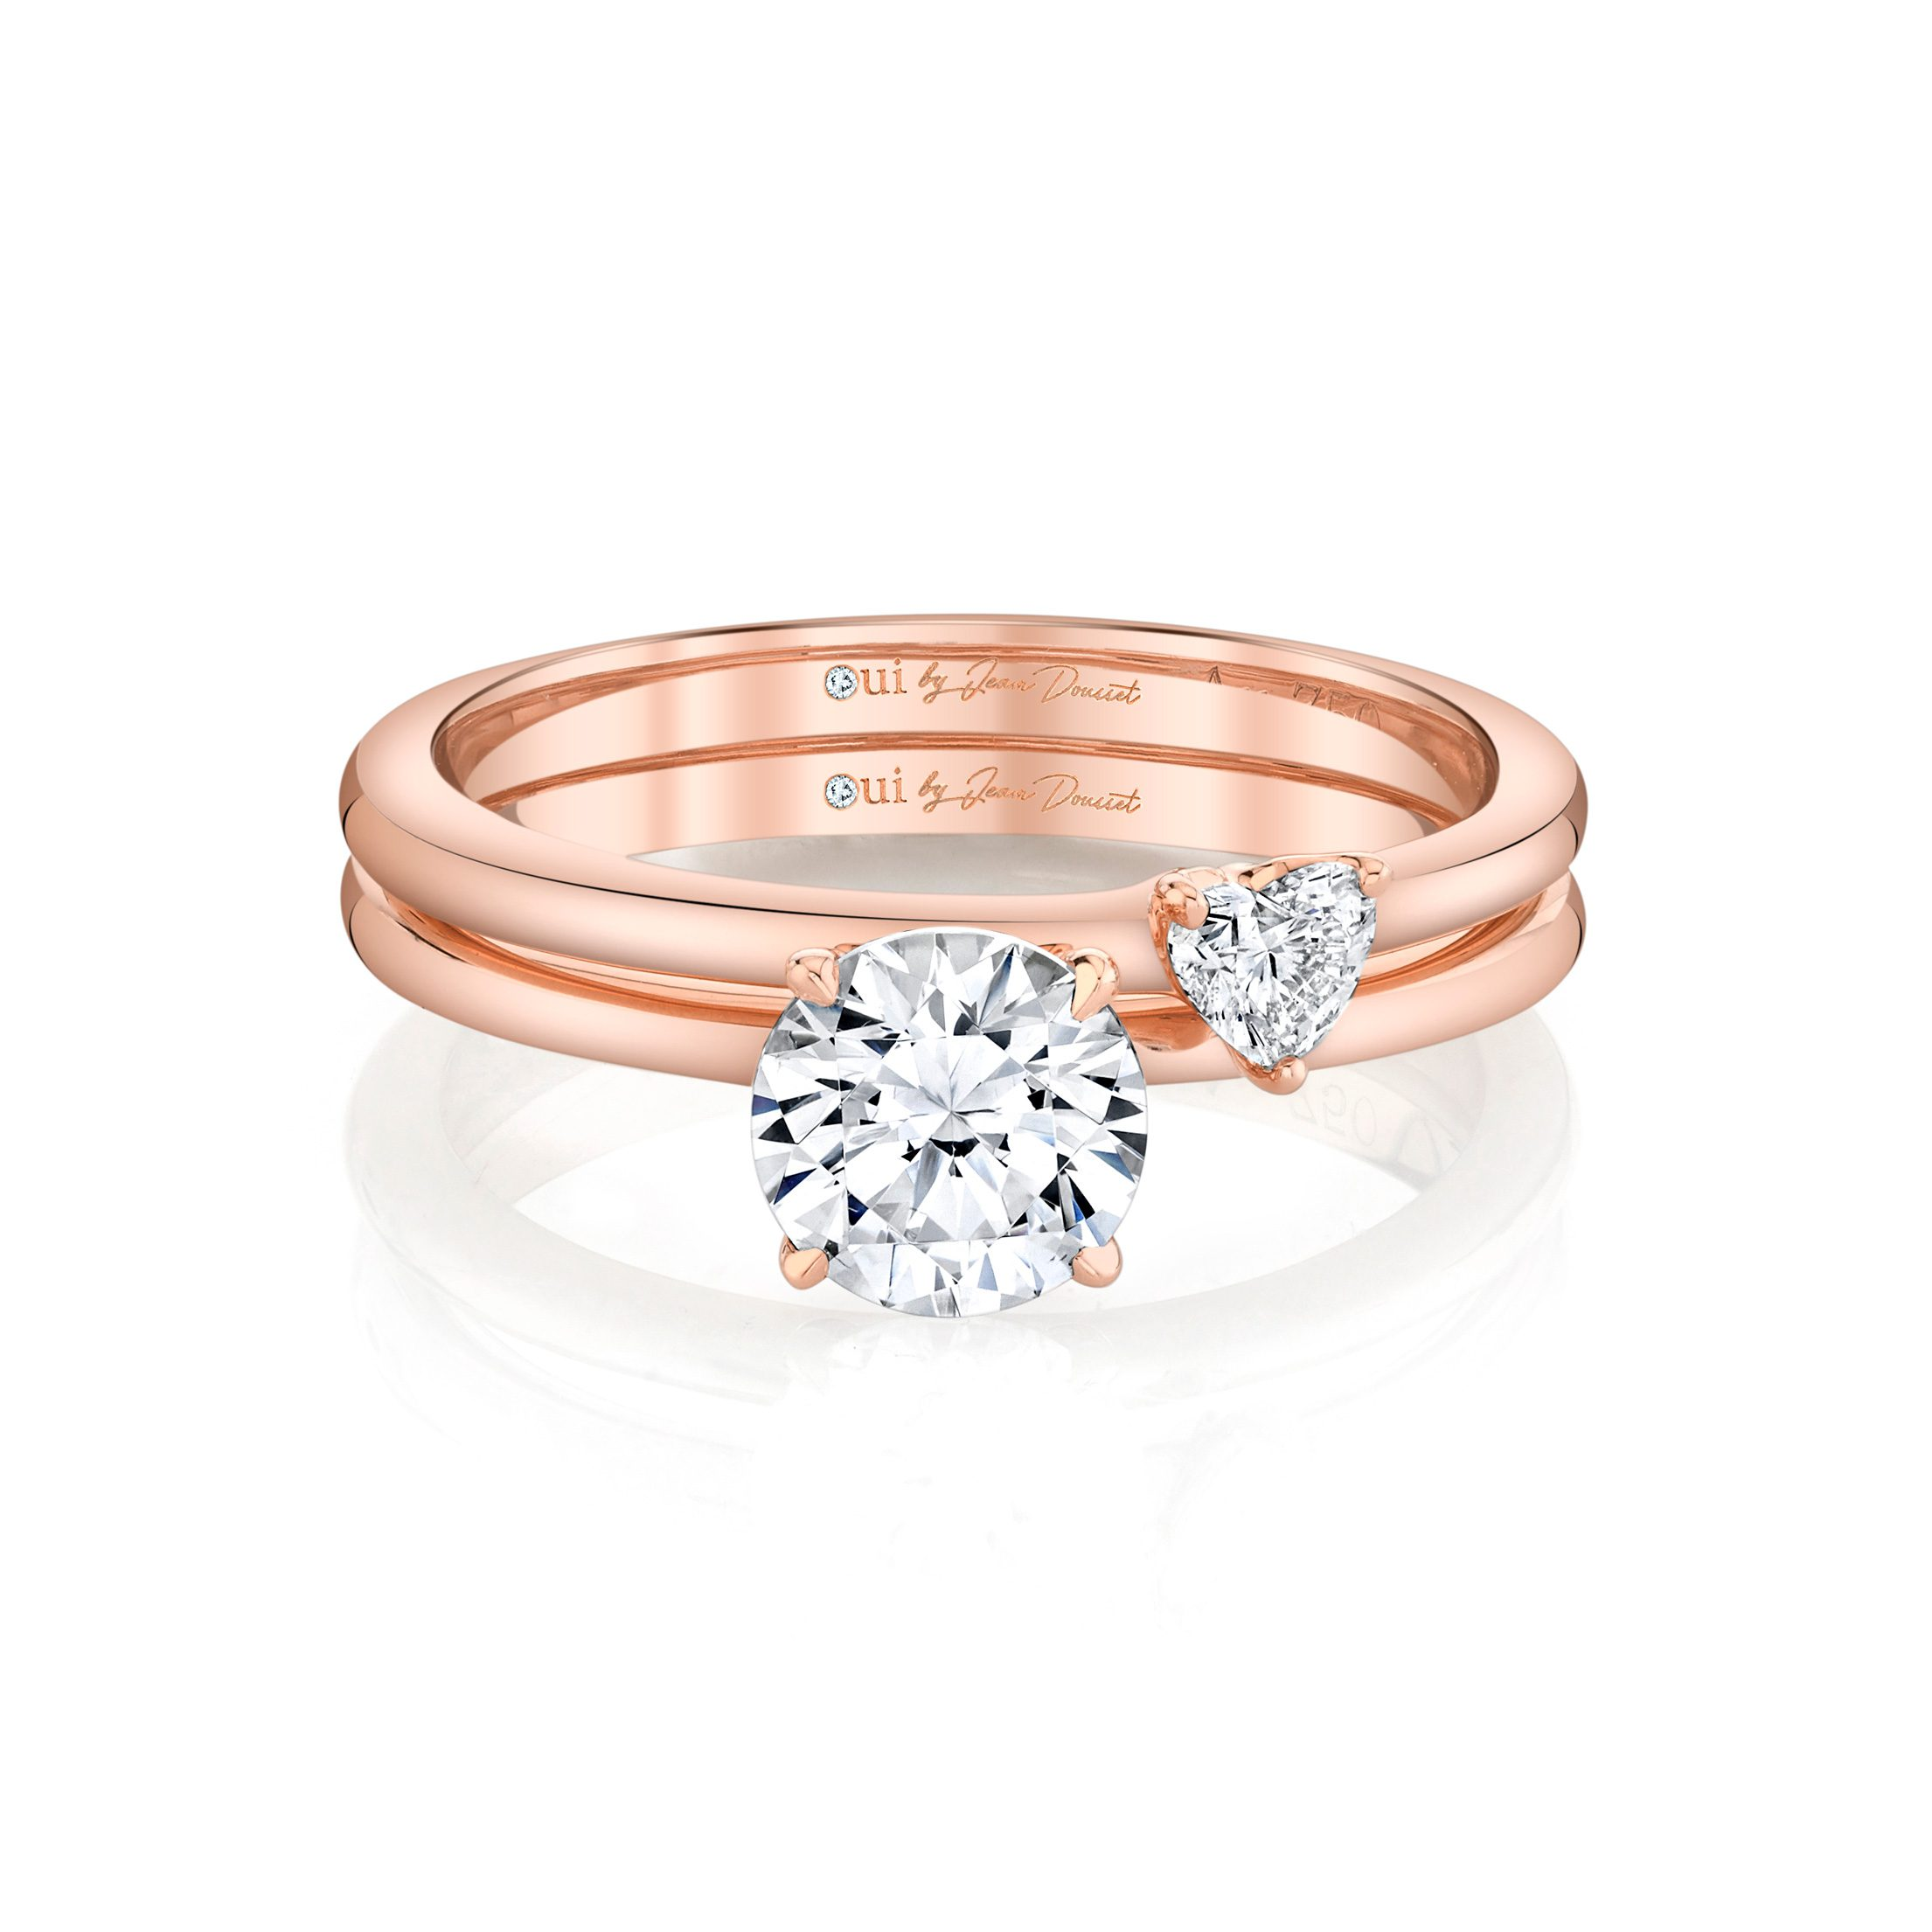 Perfect Duo Interlocking Round Brilliant Solitaire Engagement Ring & Heart Diamond Wedding Band Set 18k Rose Gold Side View by Oui by Jean Dousset